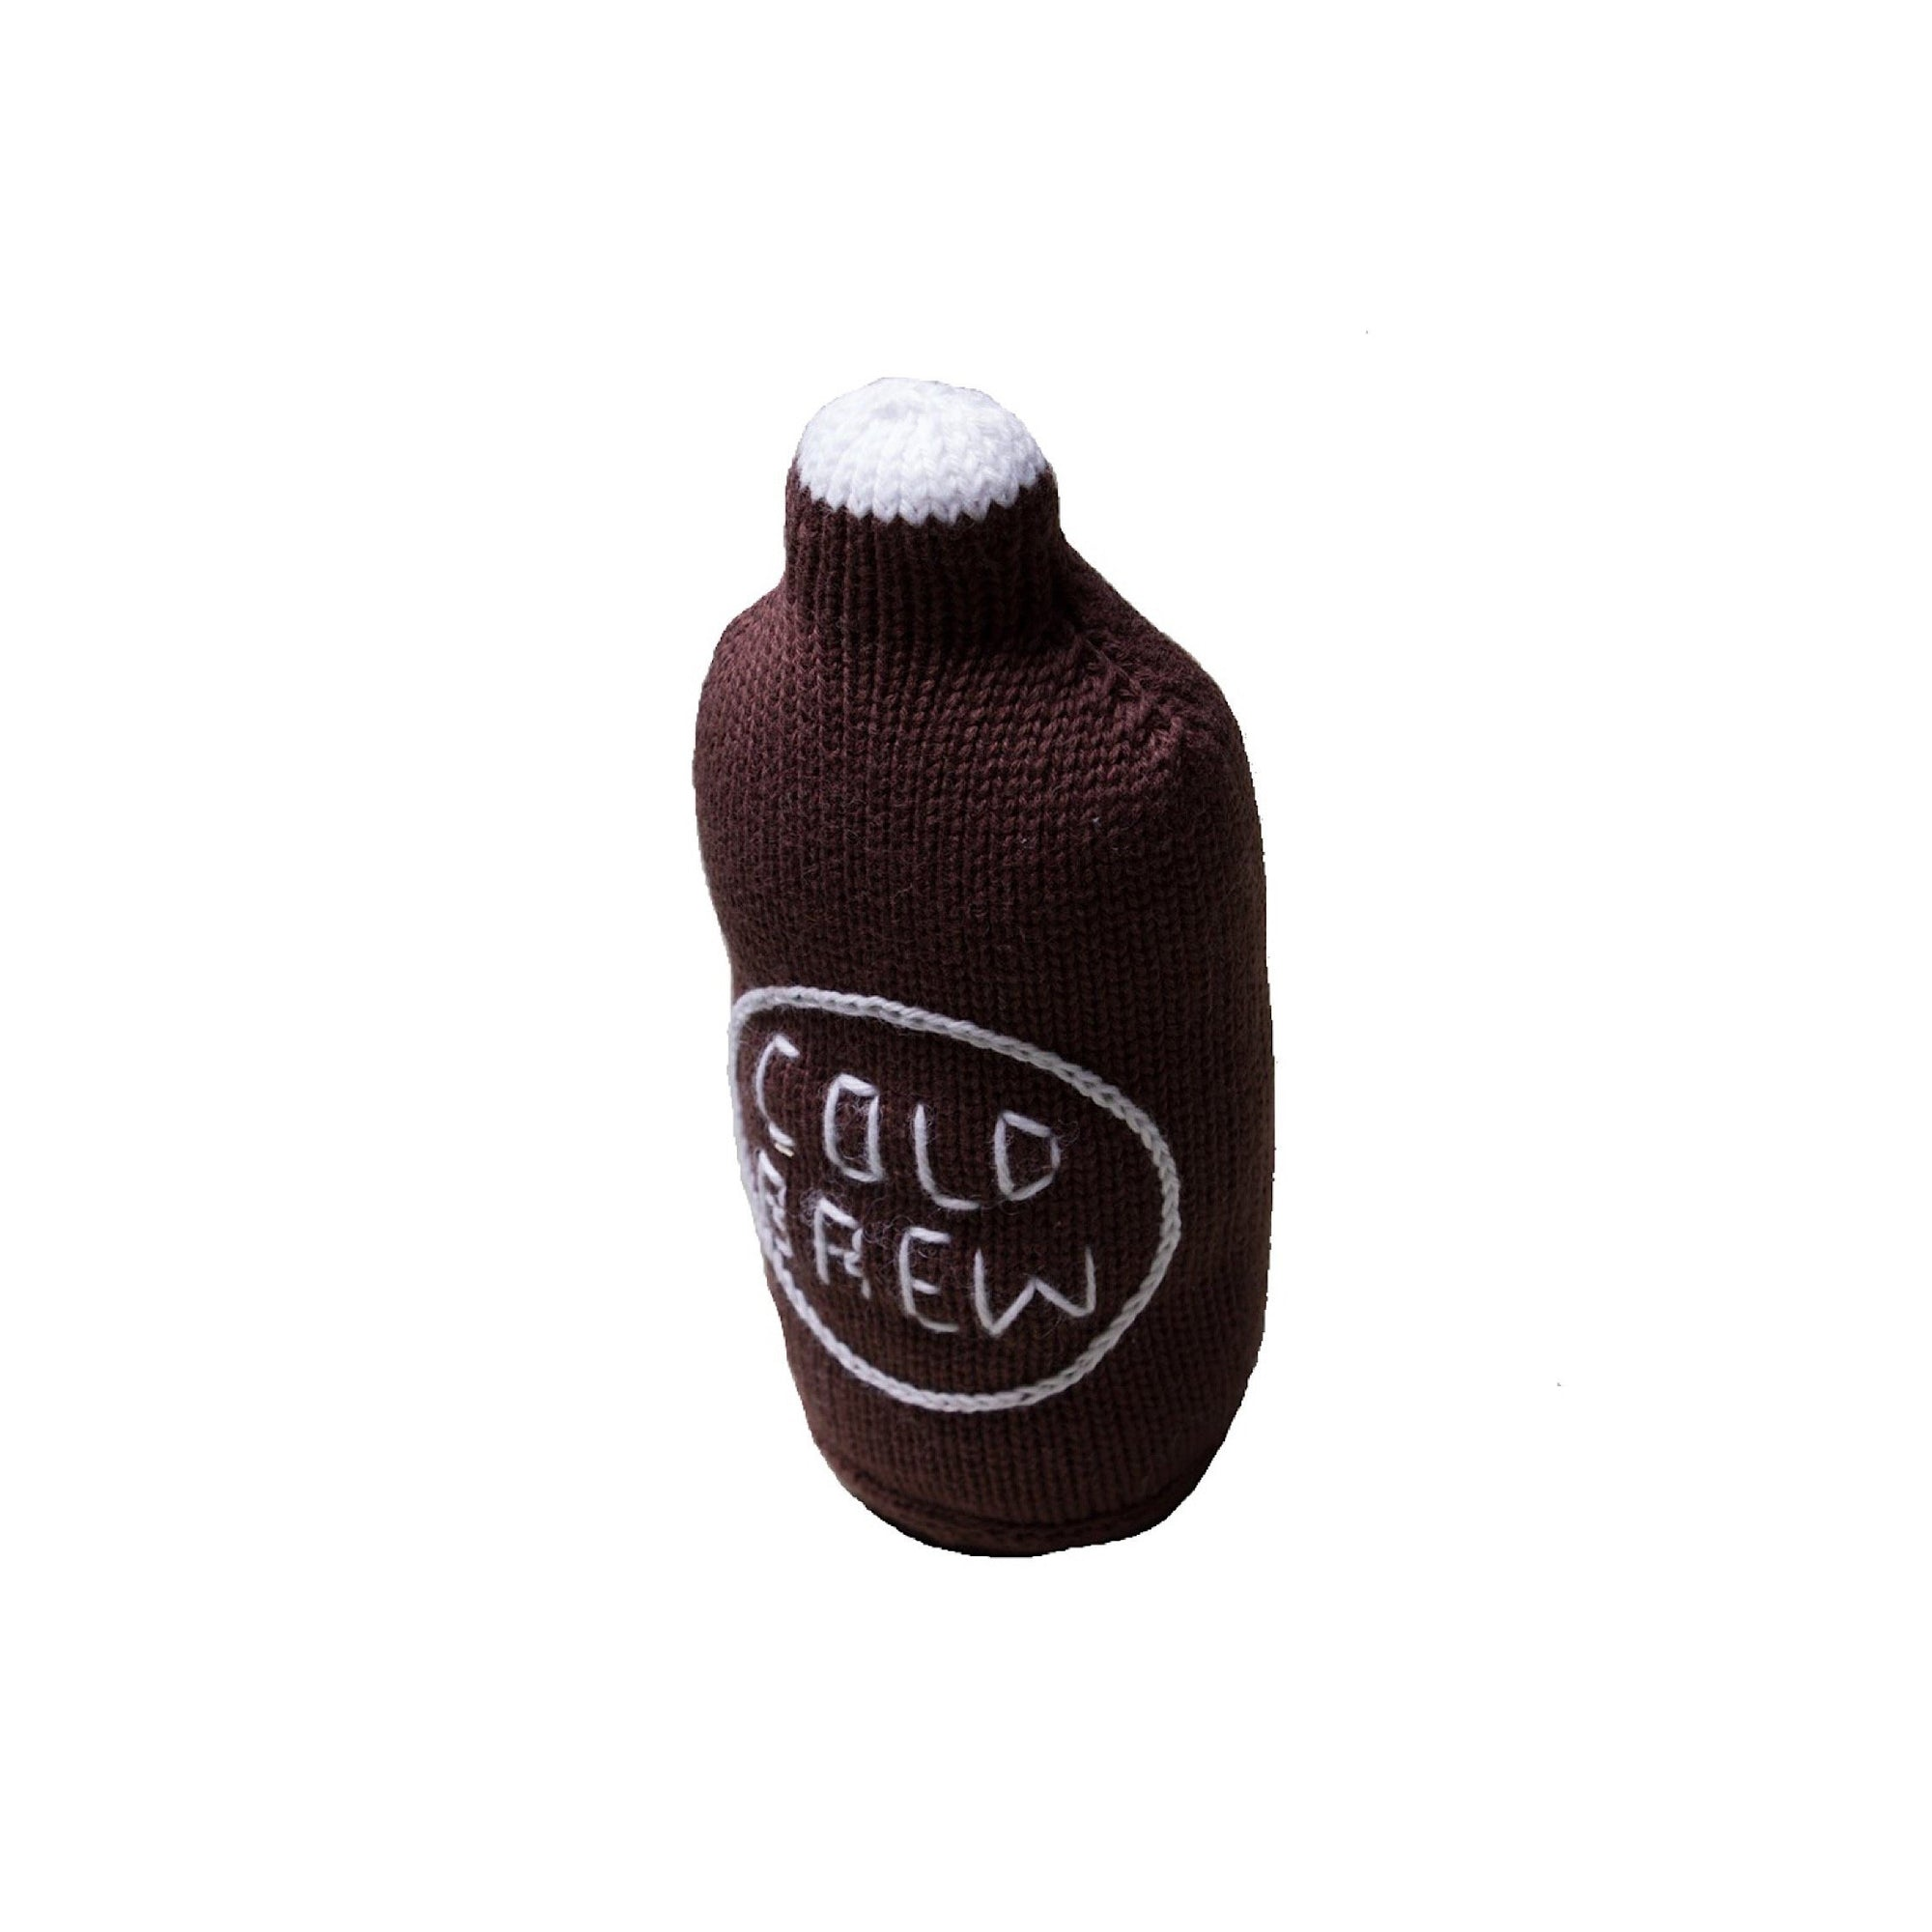 Estellas handmade organic cold brew baby rattle